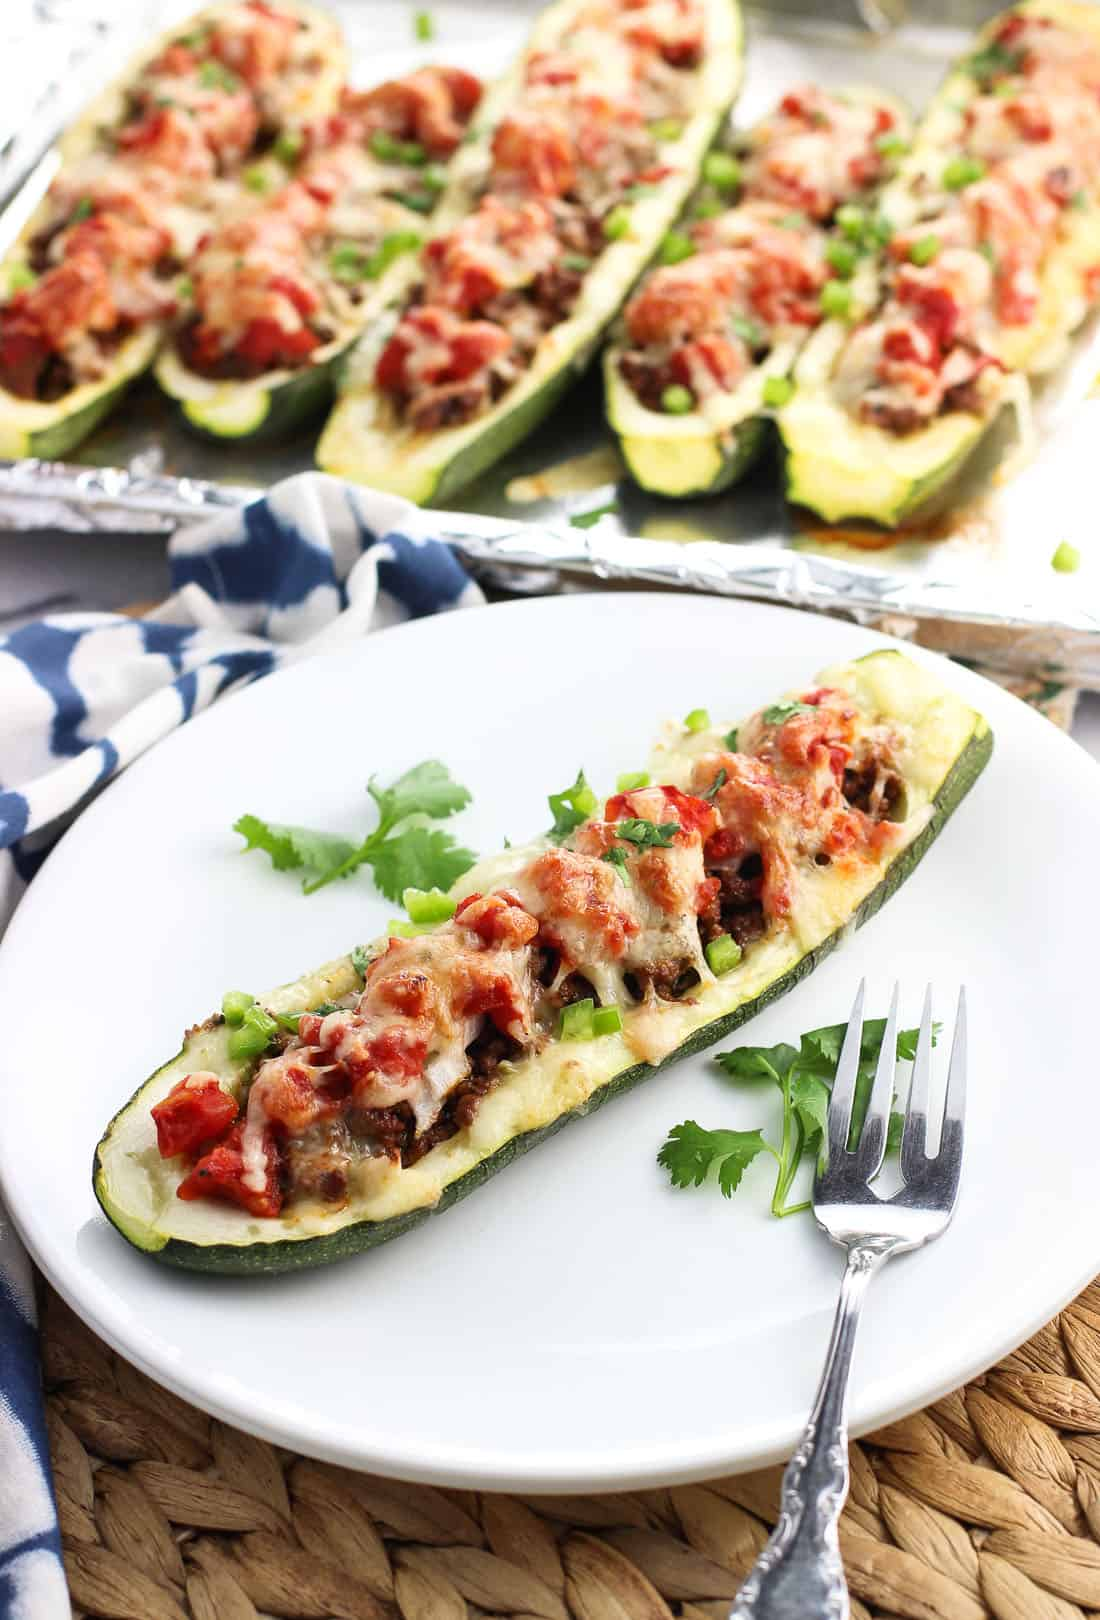 One taco zucchini boat on a plate with a fork with more zucchini halves on the baking sheet in the background